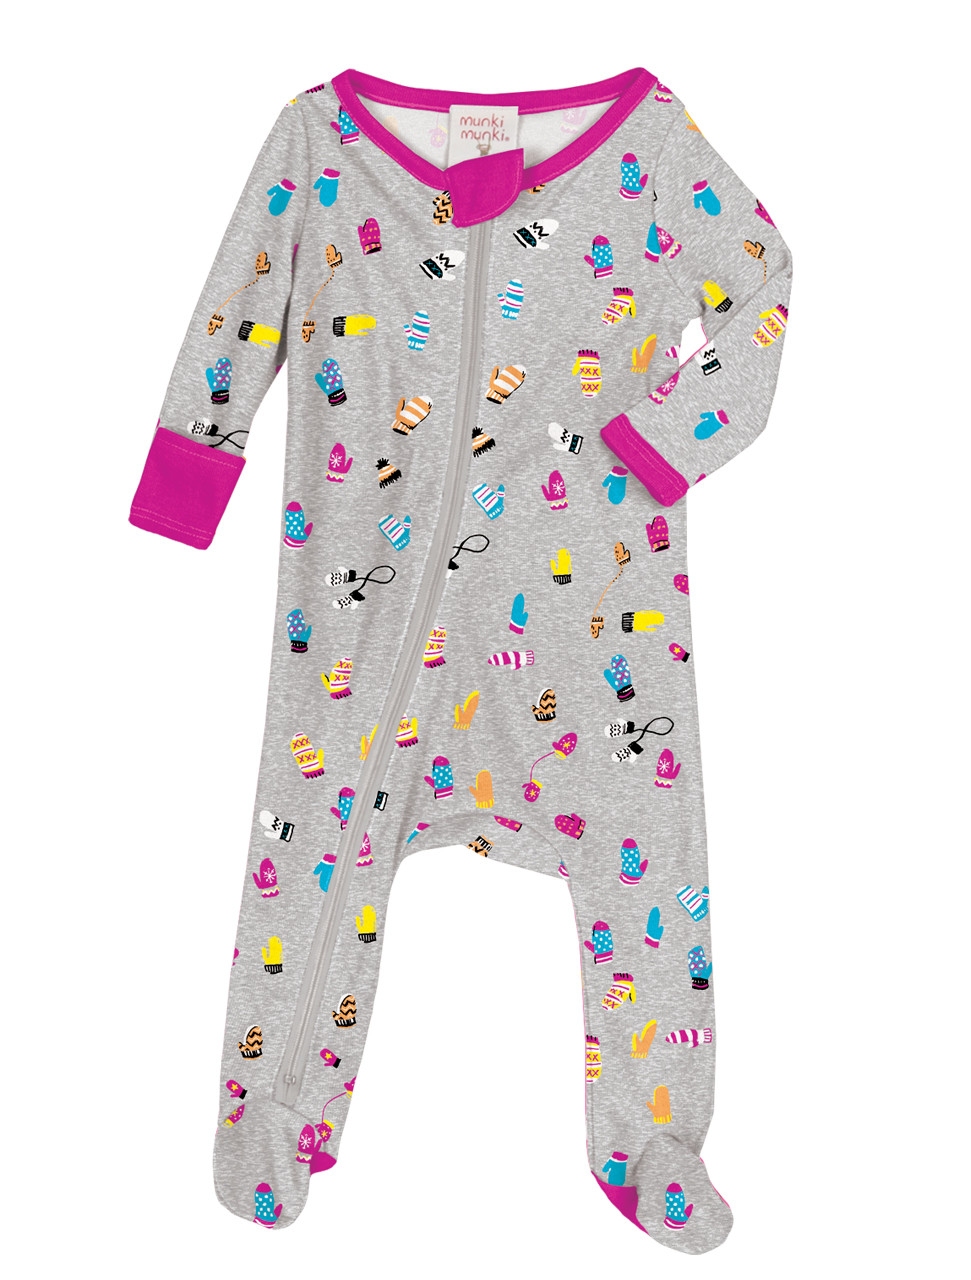 Blanket Sleeper, infant blanket sleeper, mitten pajamas ...